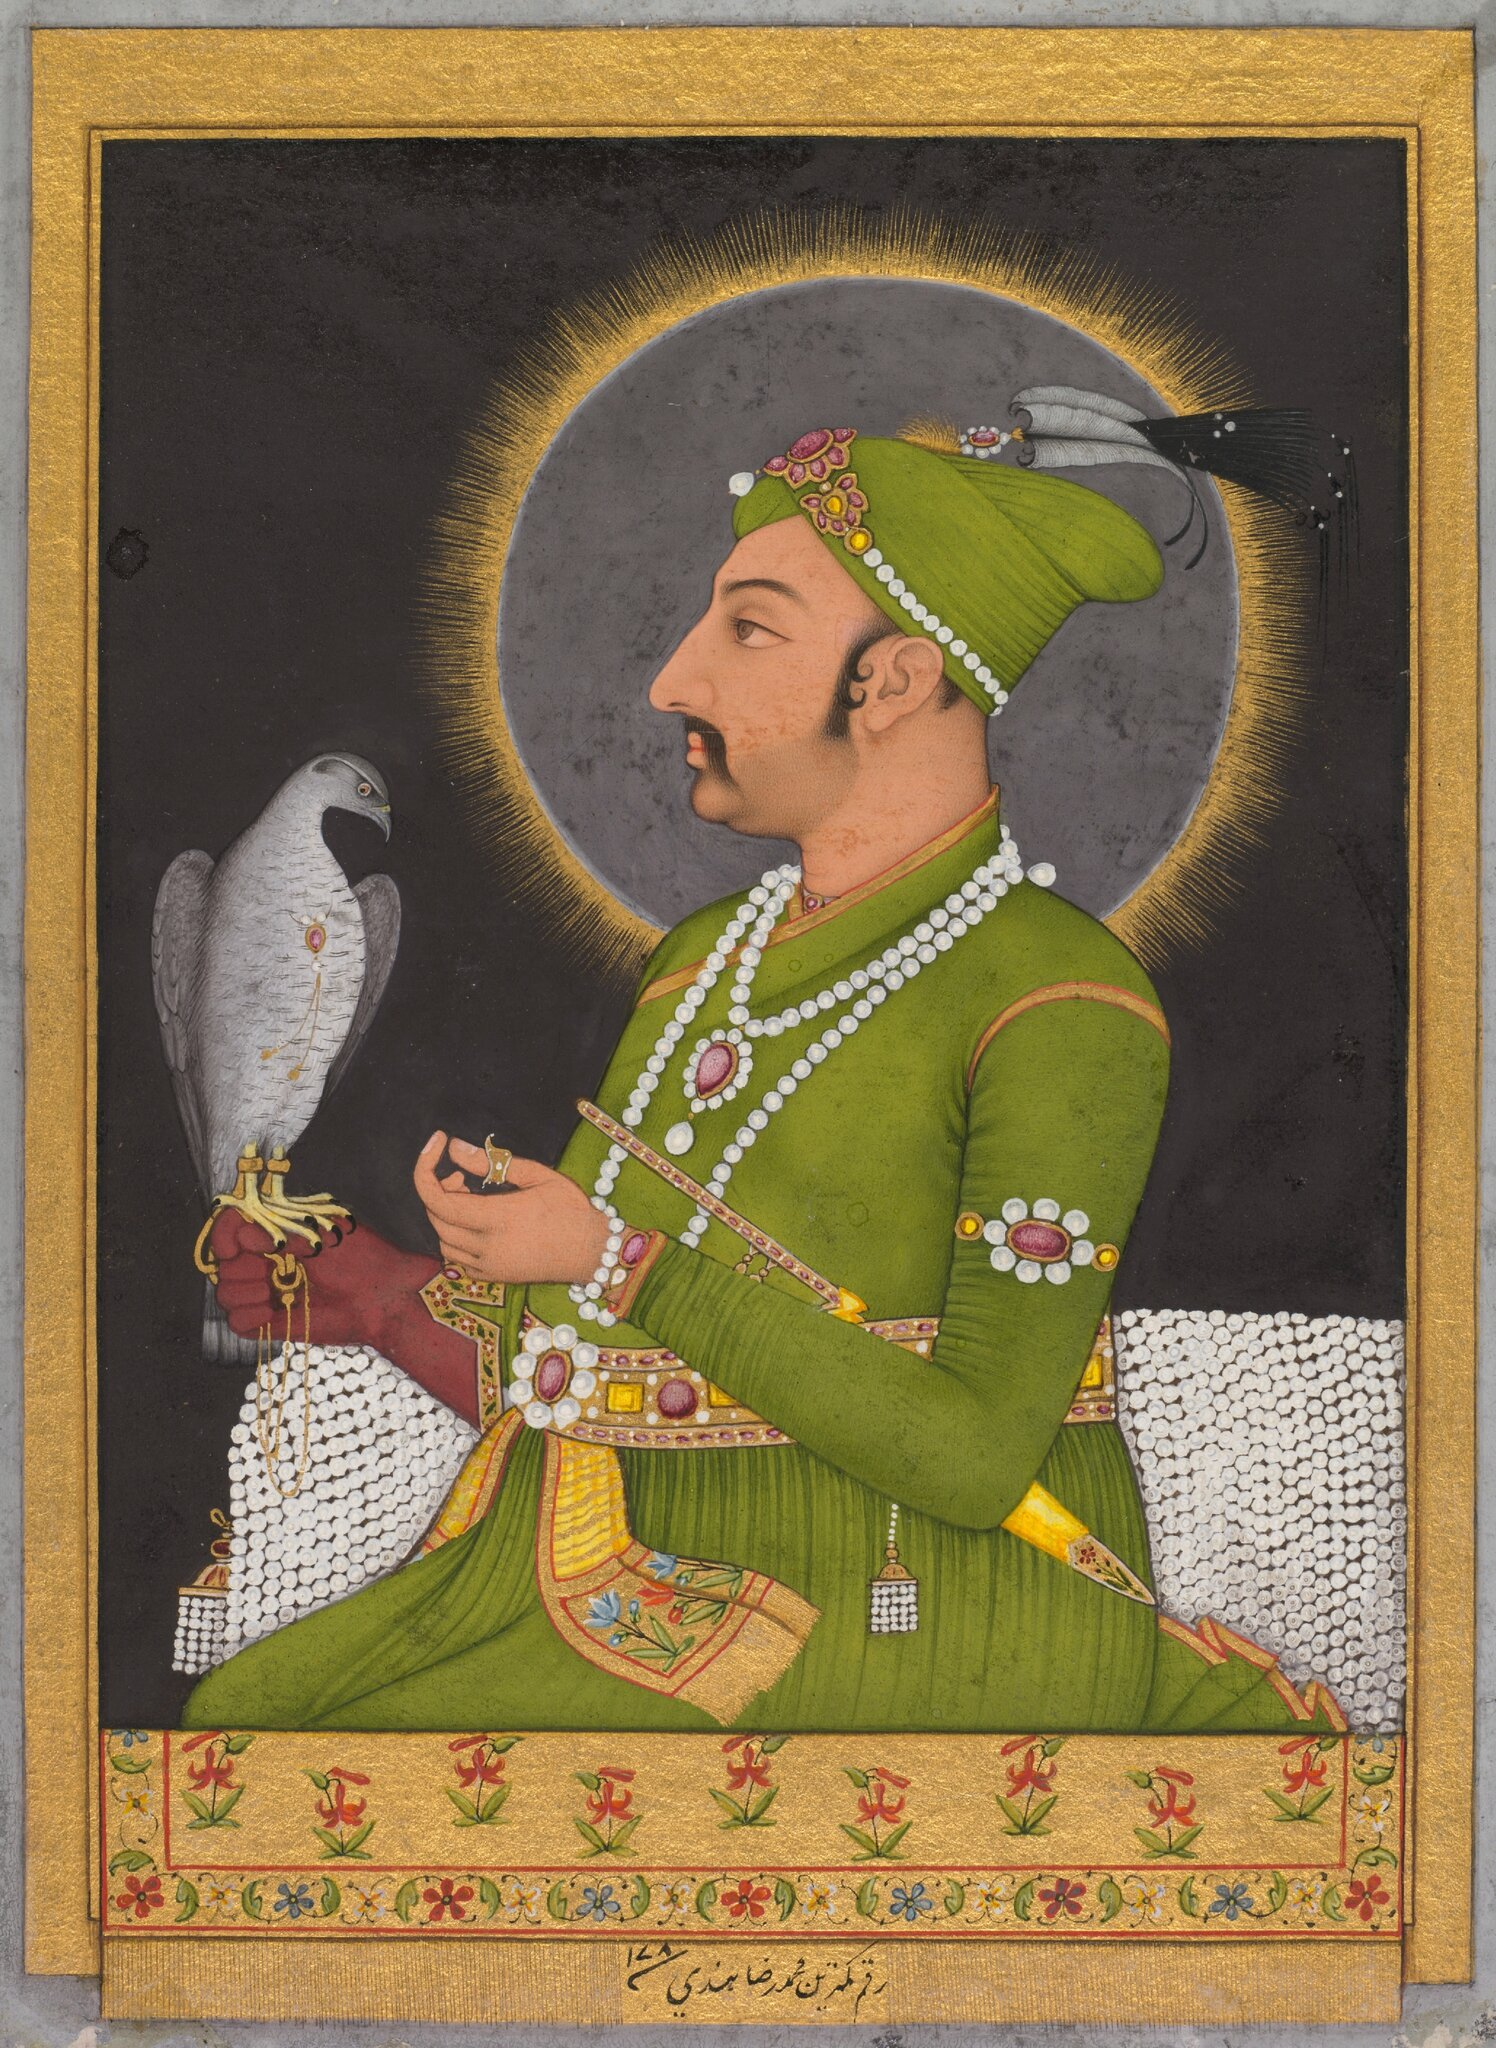 Centennial exhibition celebrates landmark acquisition of Benkaim collection of imperial Mughal paintings